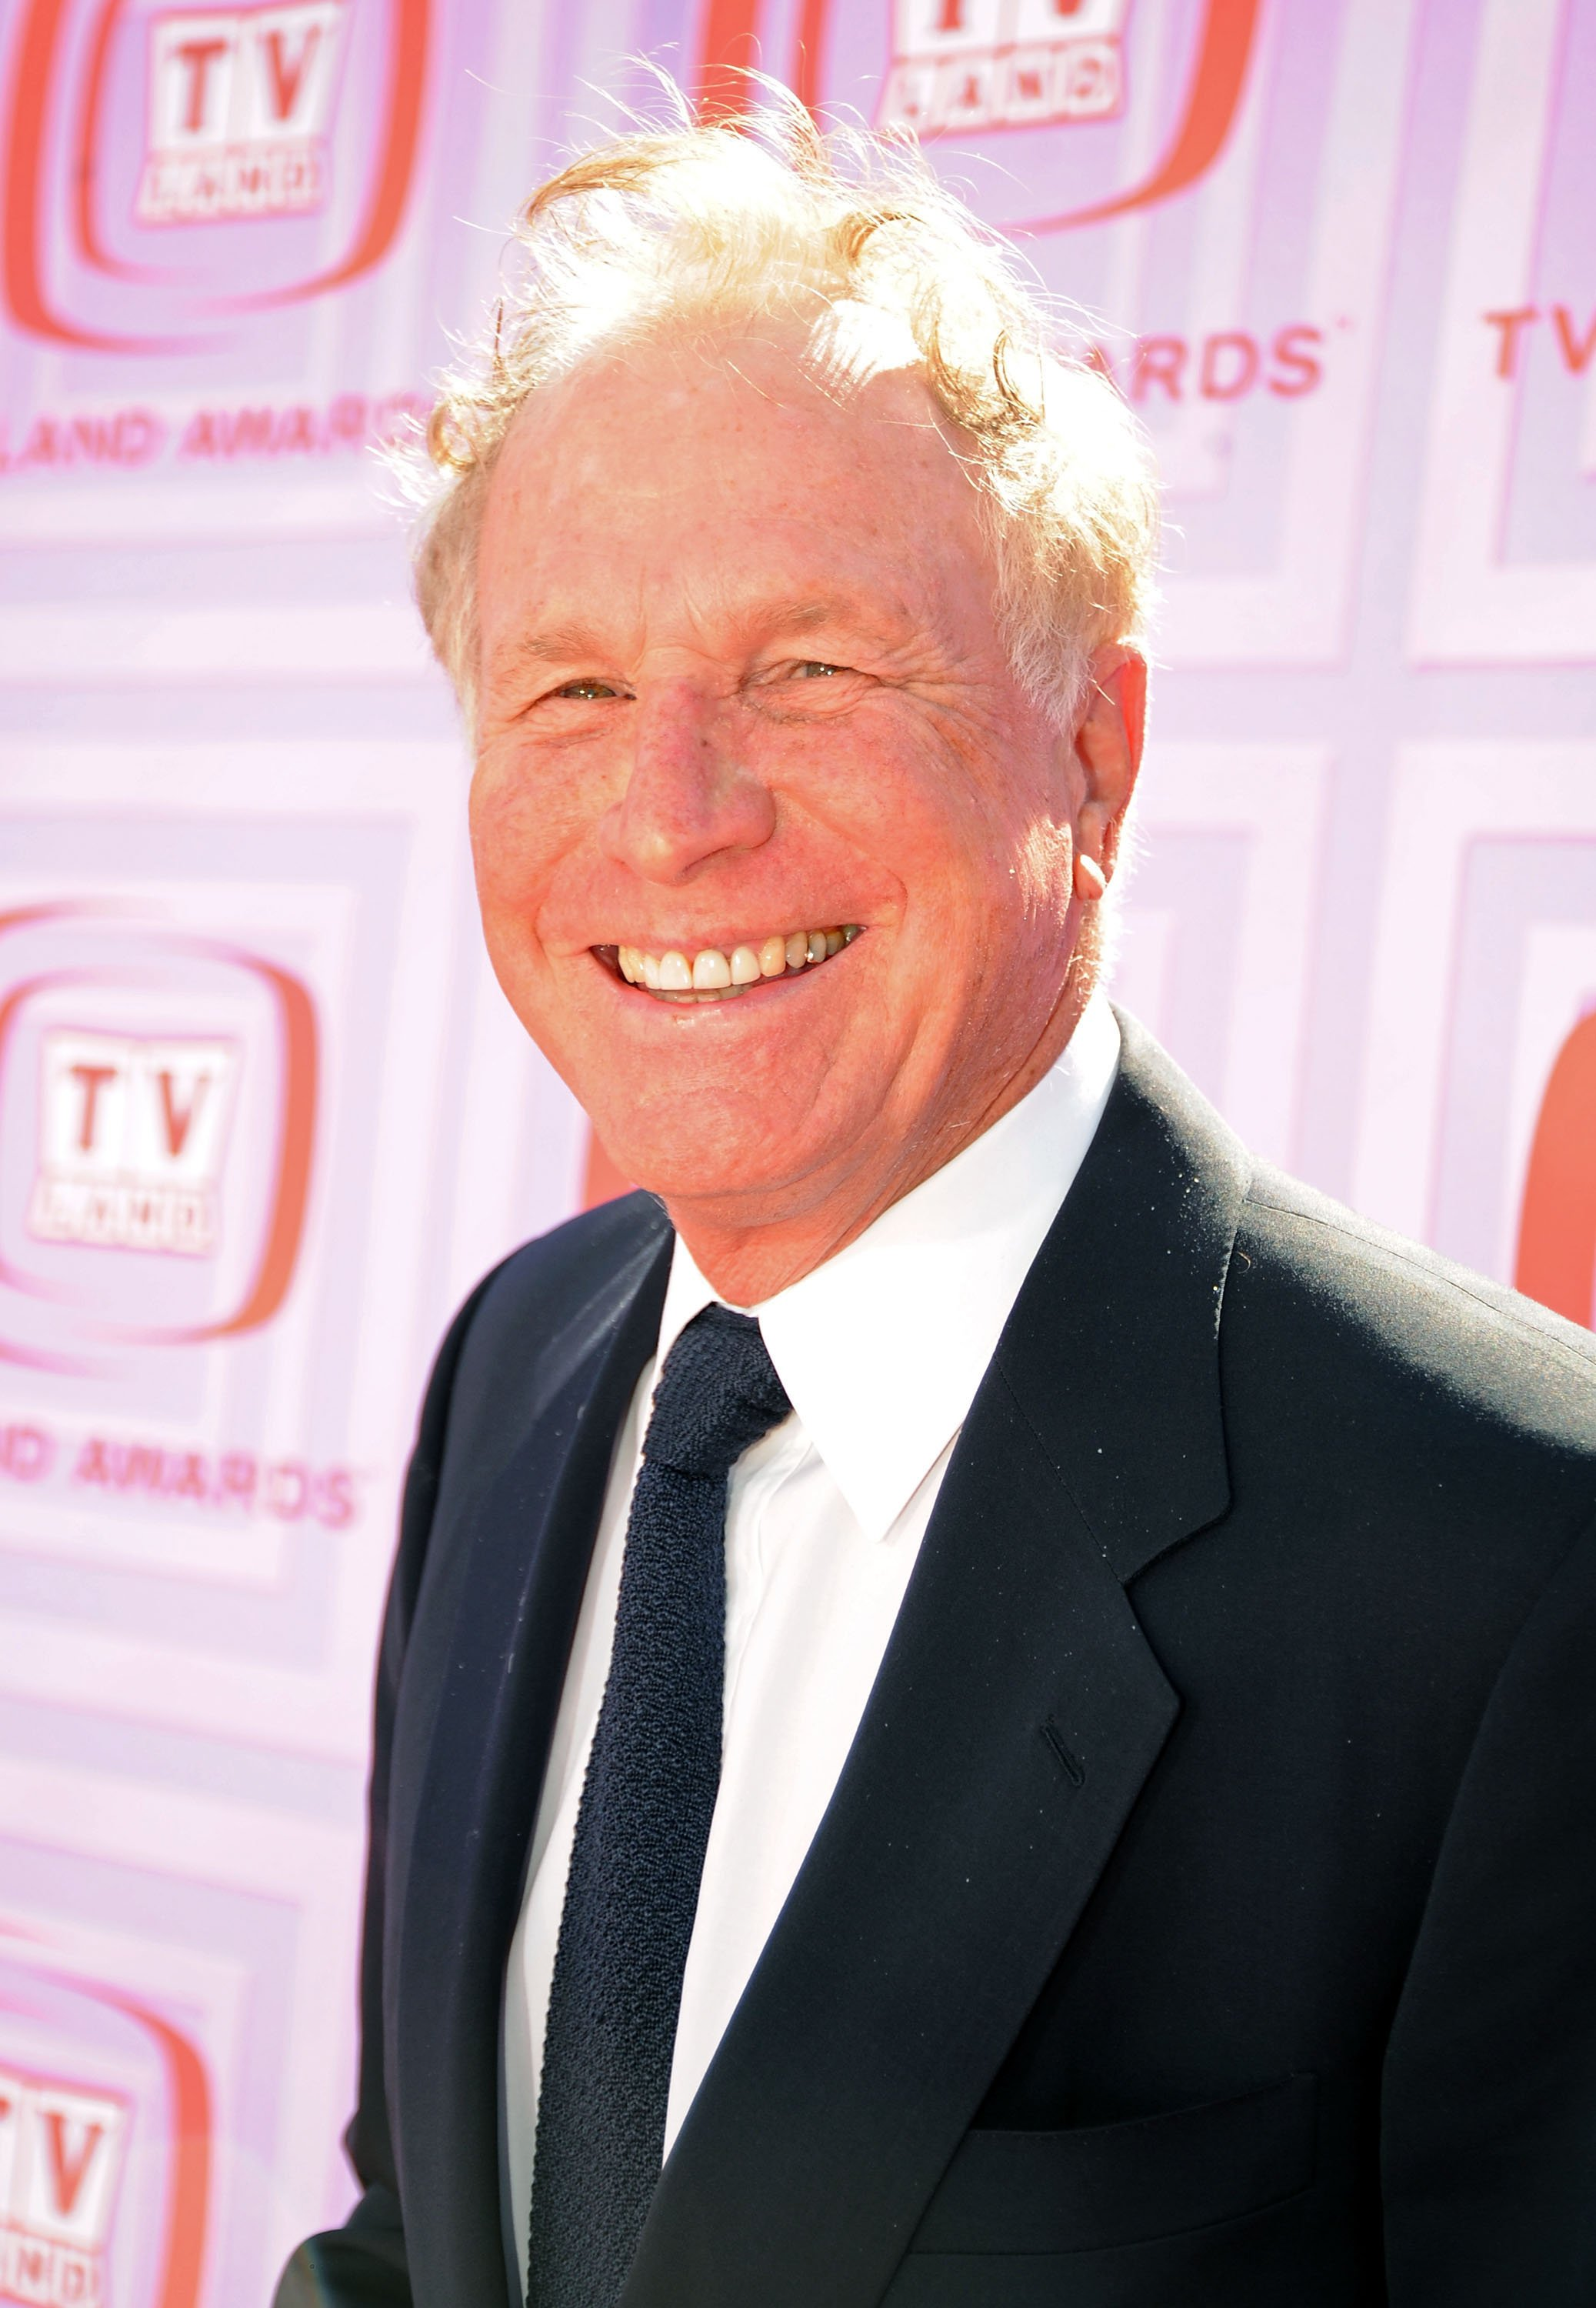 Wayne Rogers at the 7th Annual TV Land Awards held at Gibson Amphi theatre on April 19, 2009 . | Source: Getty Images